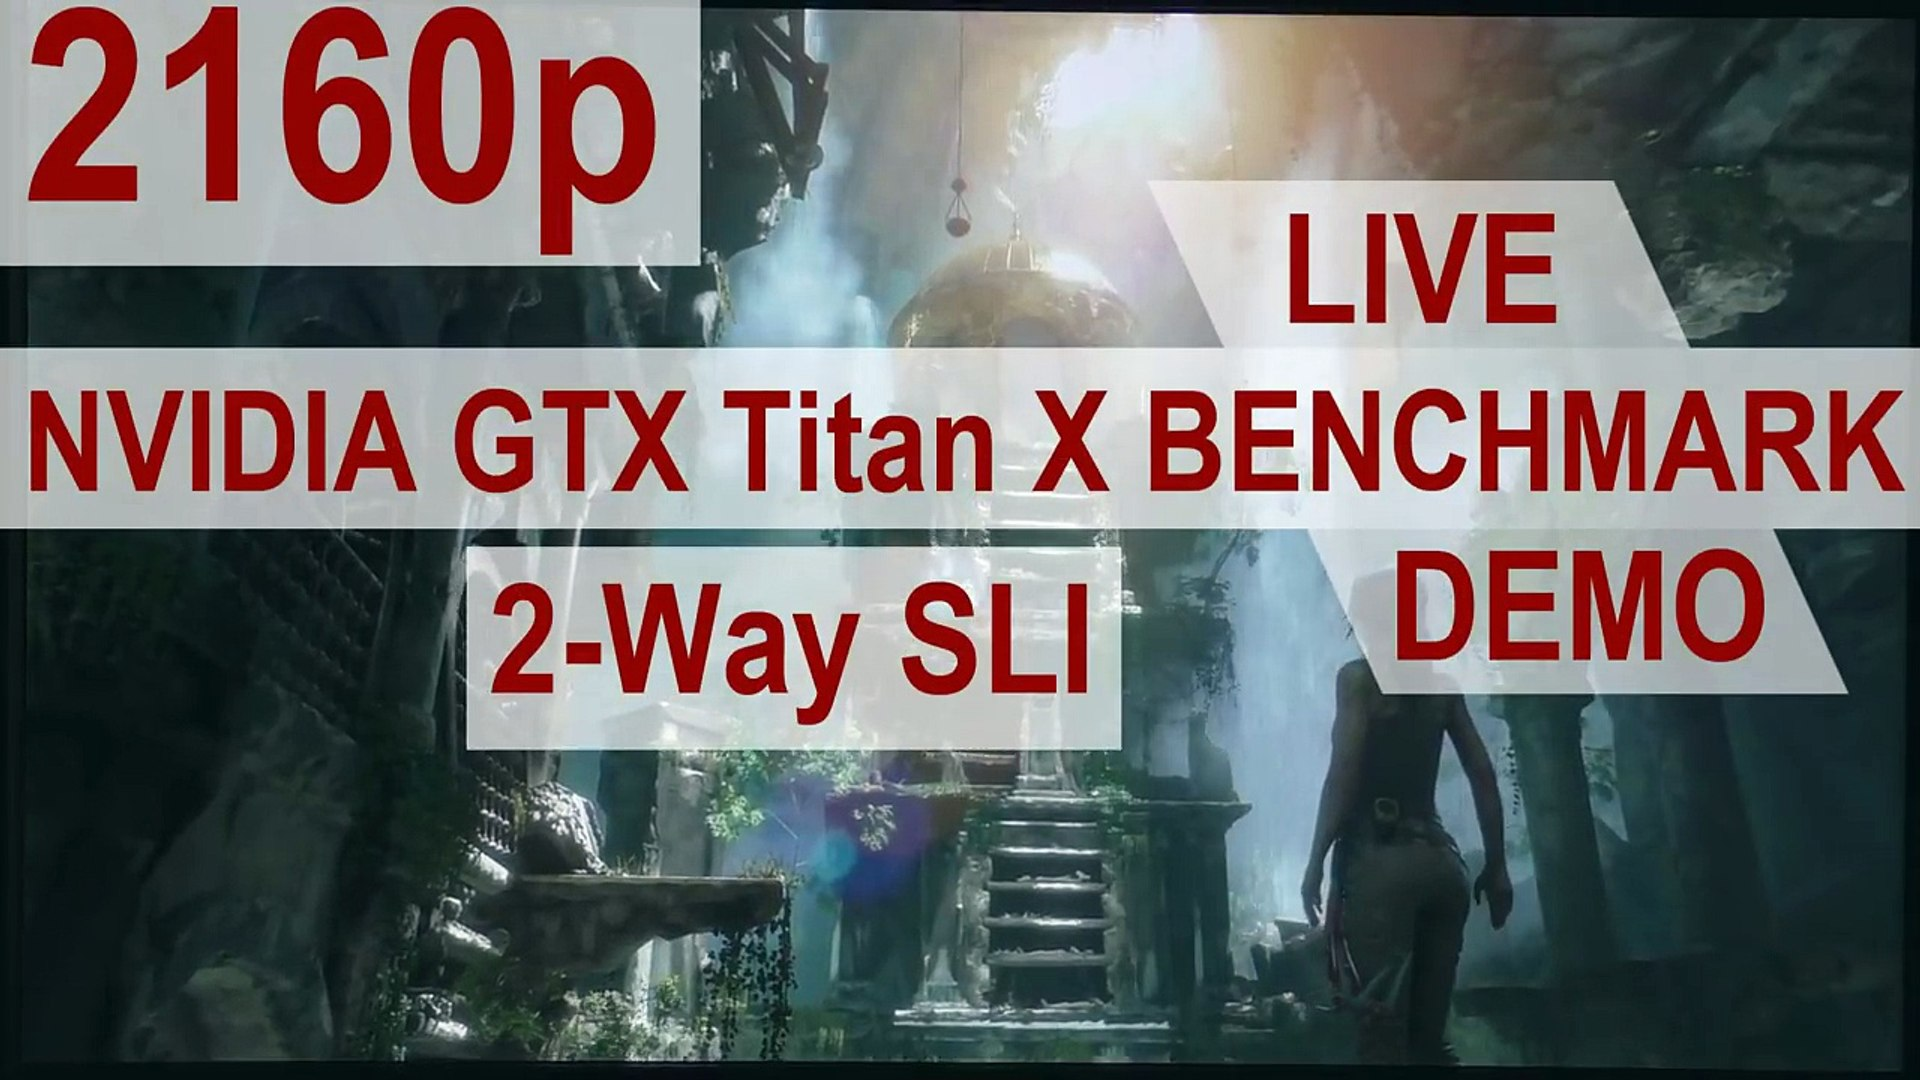 NVIDIA GTX Titan X 2-Way SLI: Rise of the Tomb Raider (Live Benchmark 4K  Demo)